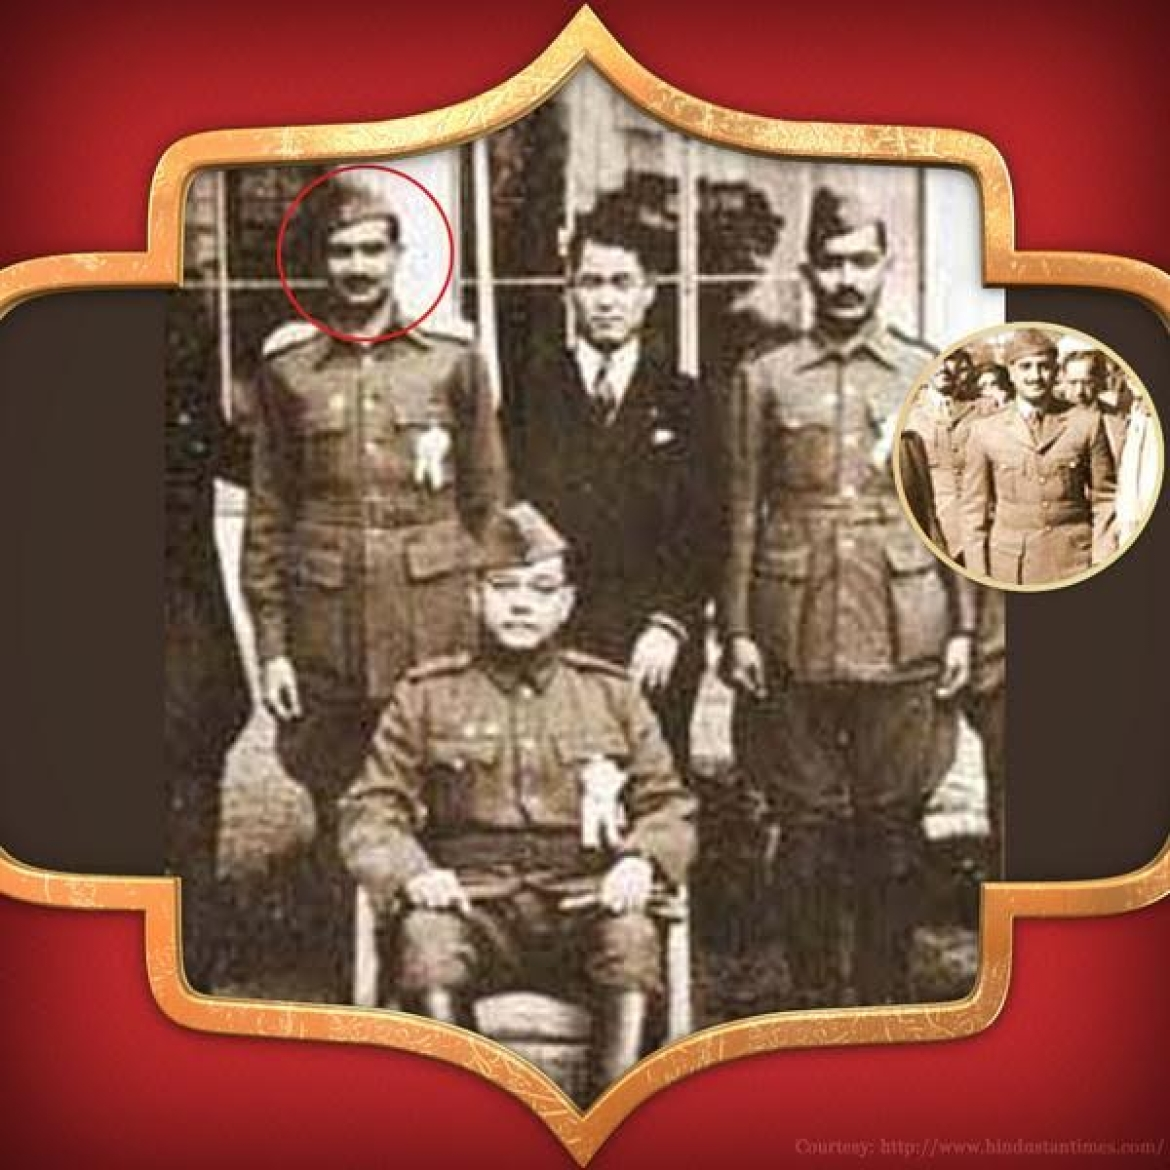 General Shahnawaz Khan with Bose